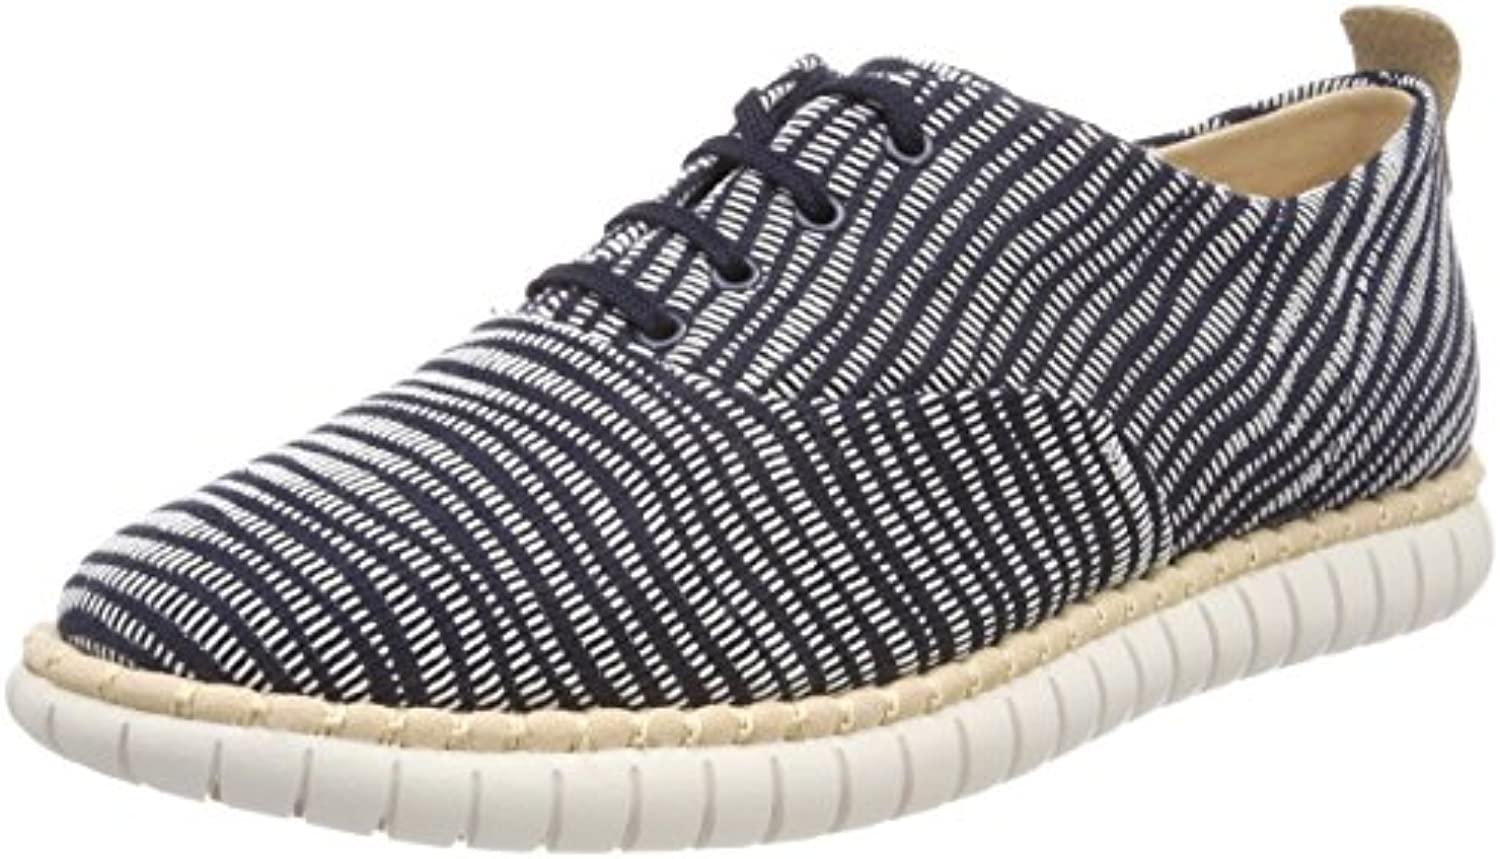 Clarks Mzt Blithe, Basses Sneakers Basses Blithe, Femme c5a36a